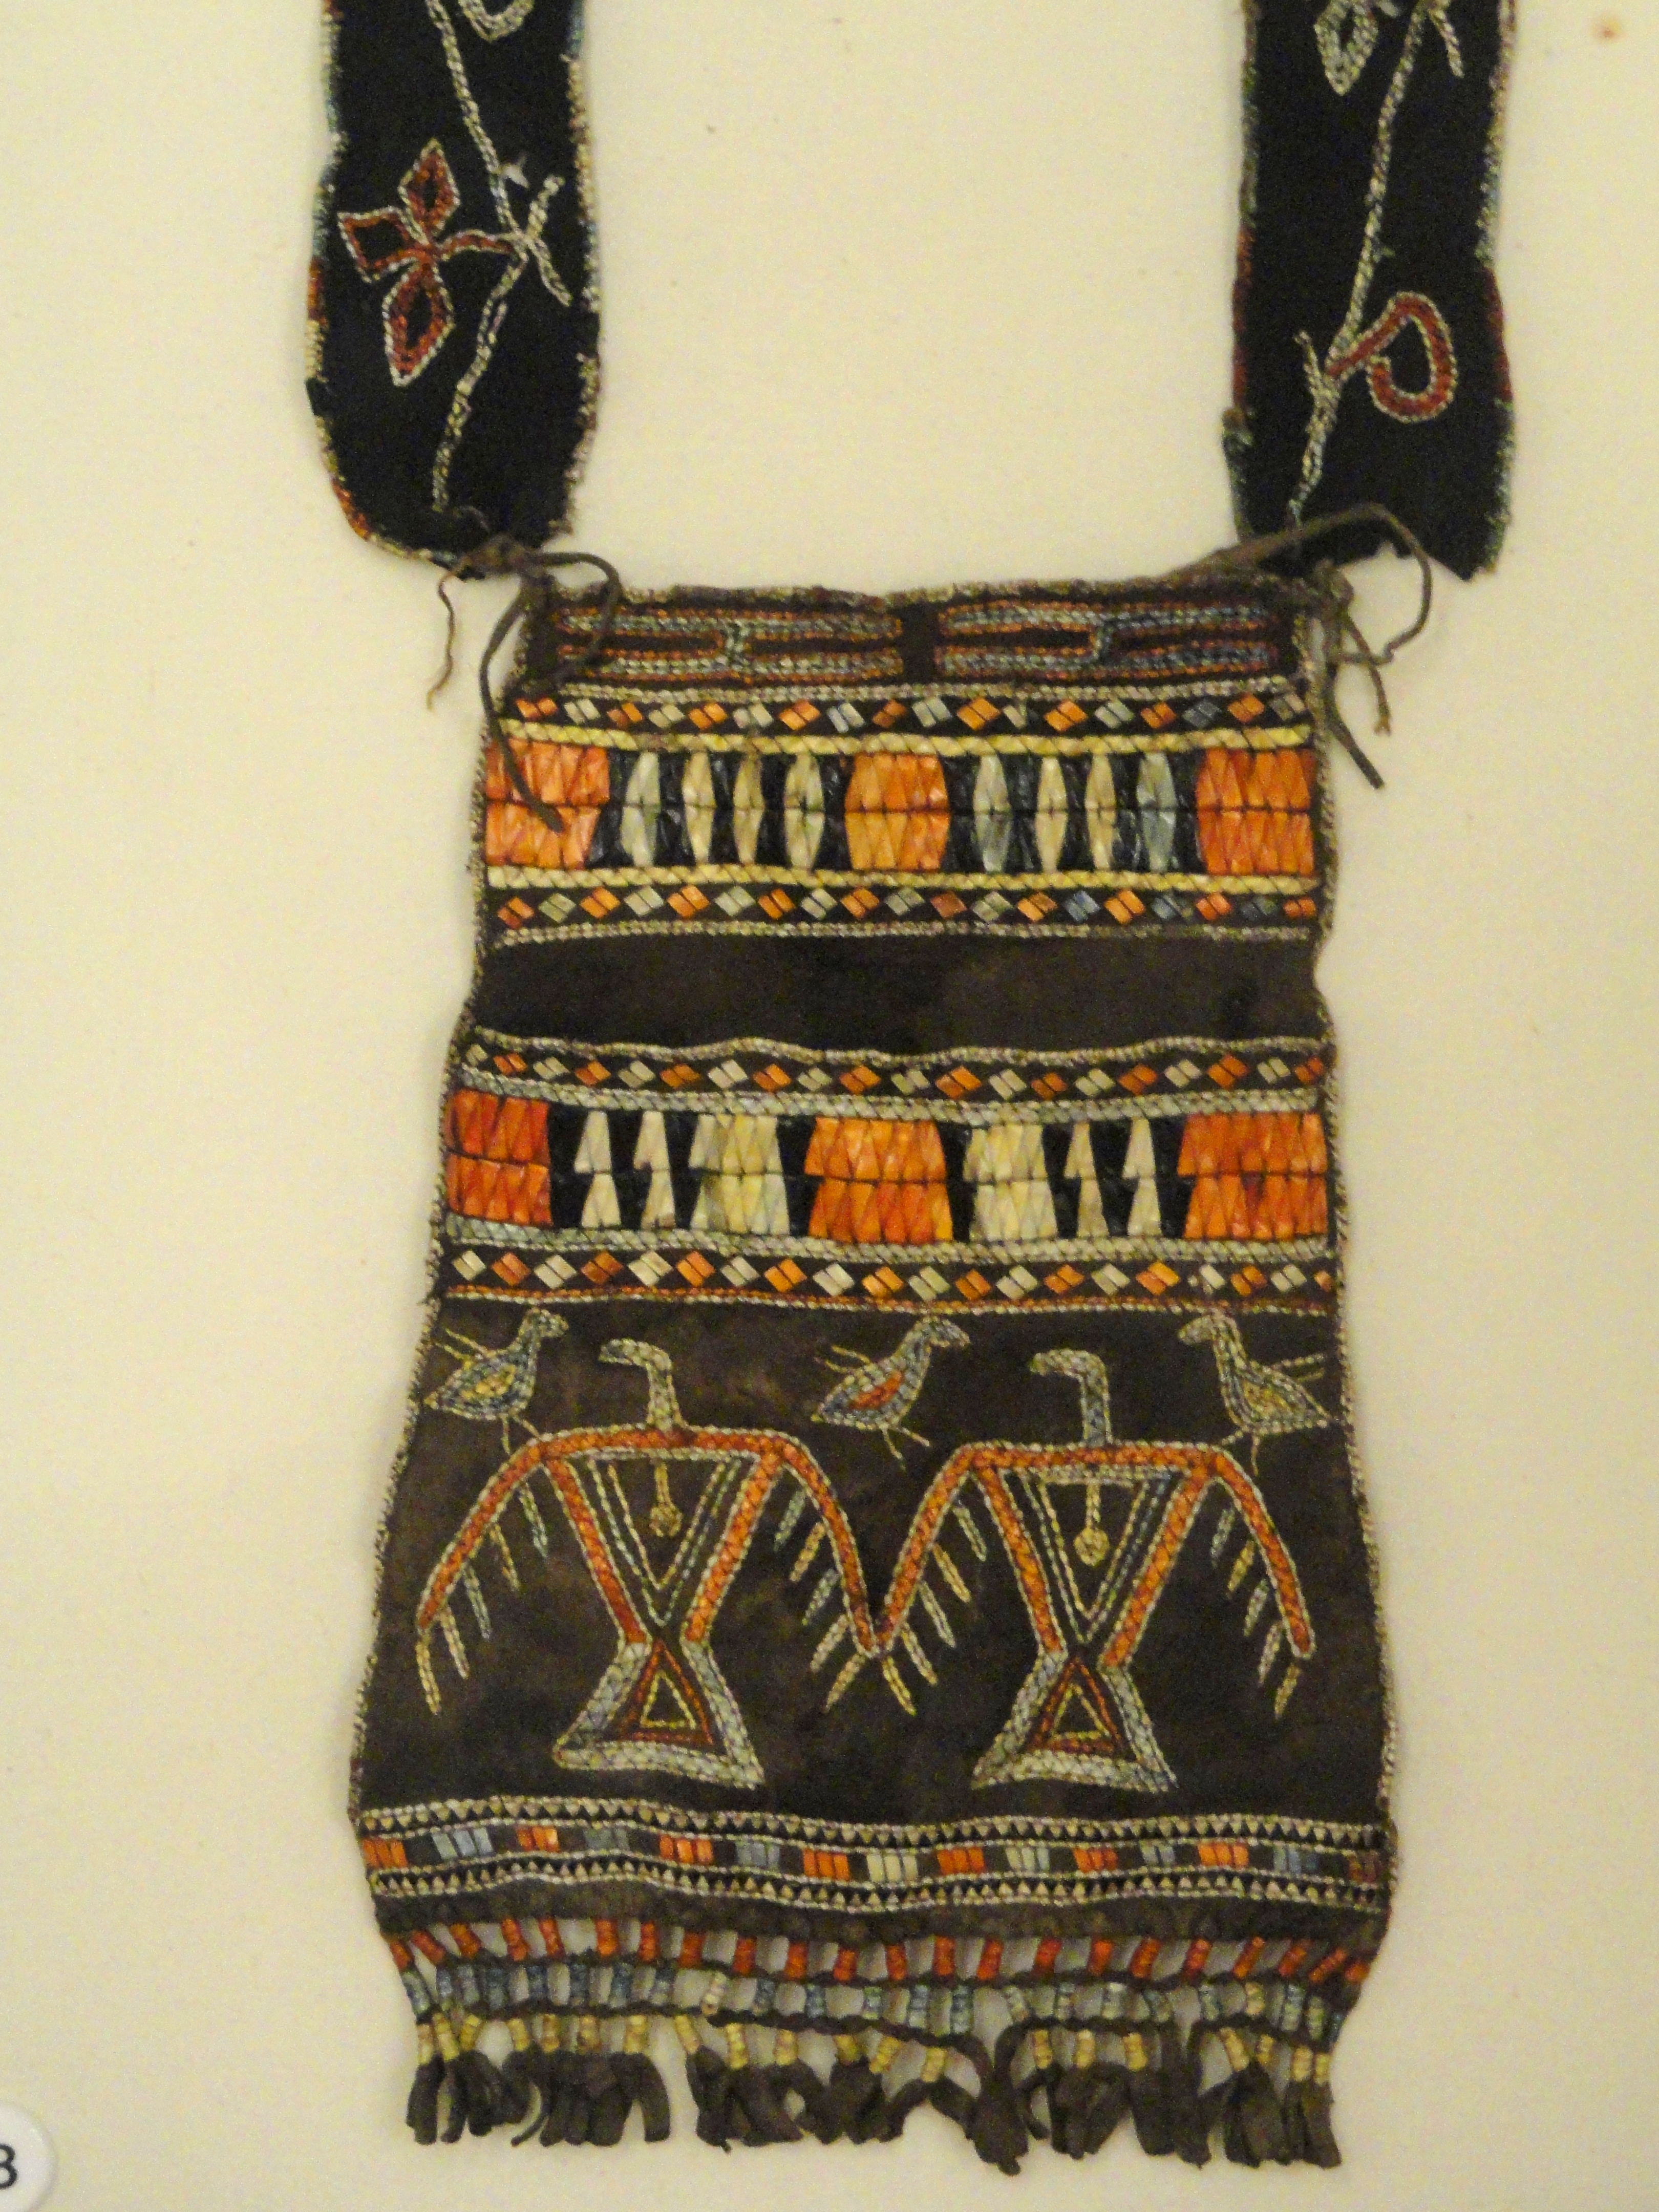 Pouch, southeastern Ojibwa, with porcupine quills, from Boston Museum Collection - Native American collection - Peabody Museum, Harvard University - DSC05441.JPG